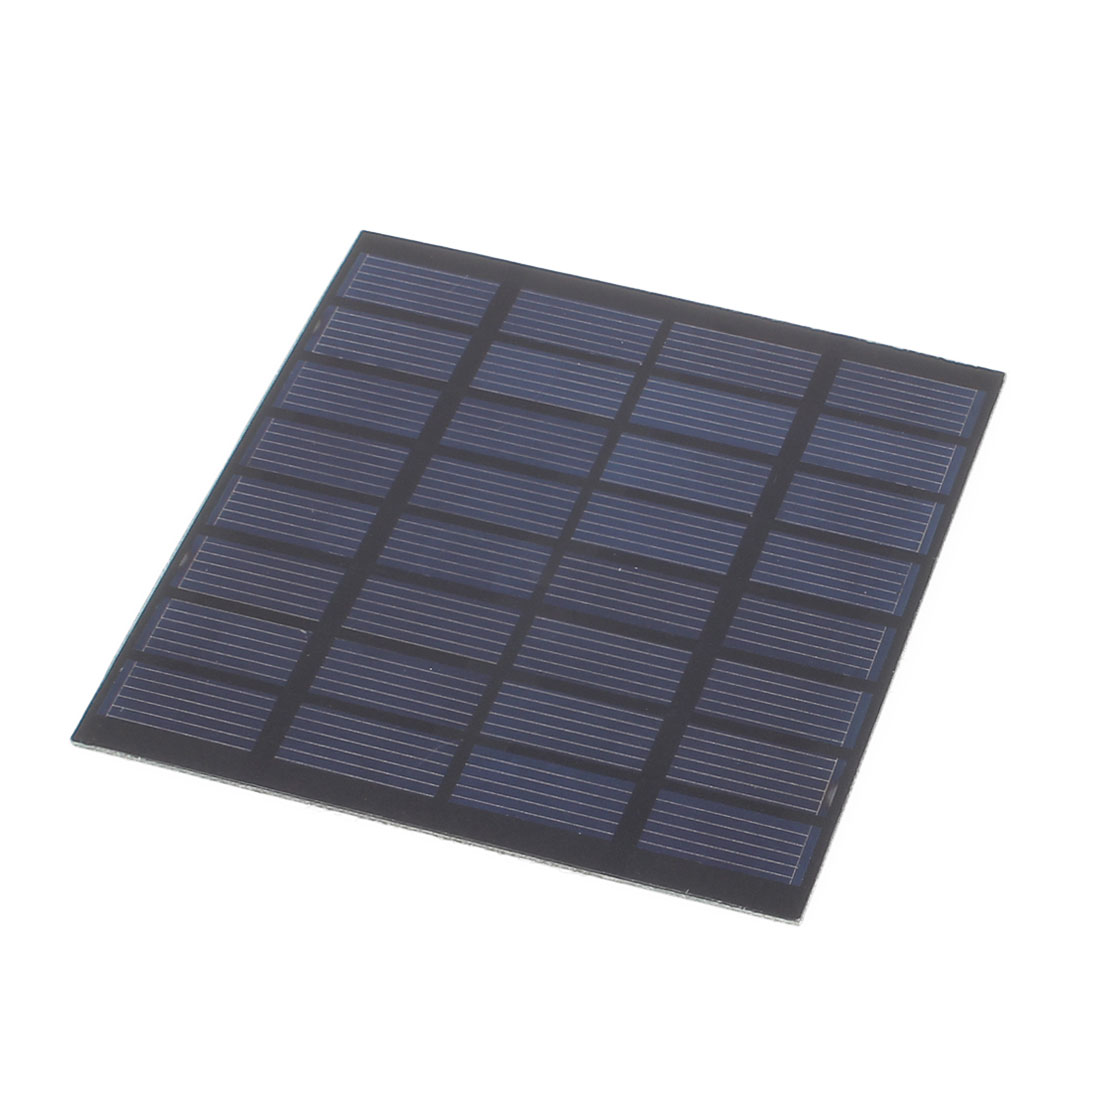 8V 1.8W DIY Polycrystallinesilicon Solar Panel Power Cell Battery Charger 110mm x 110mm